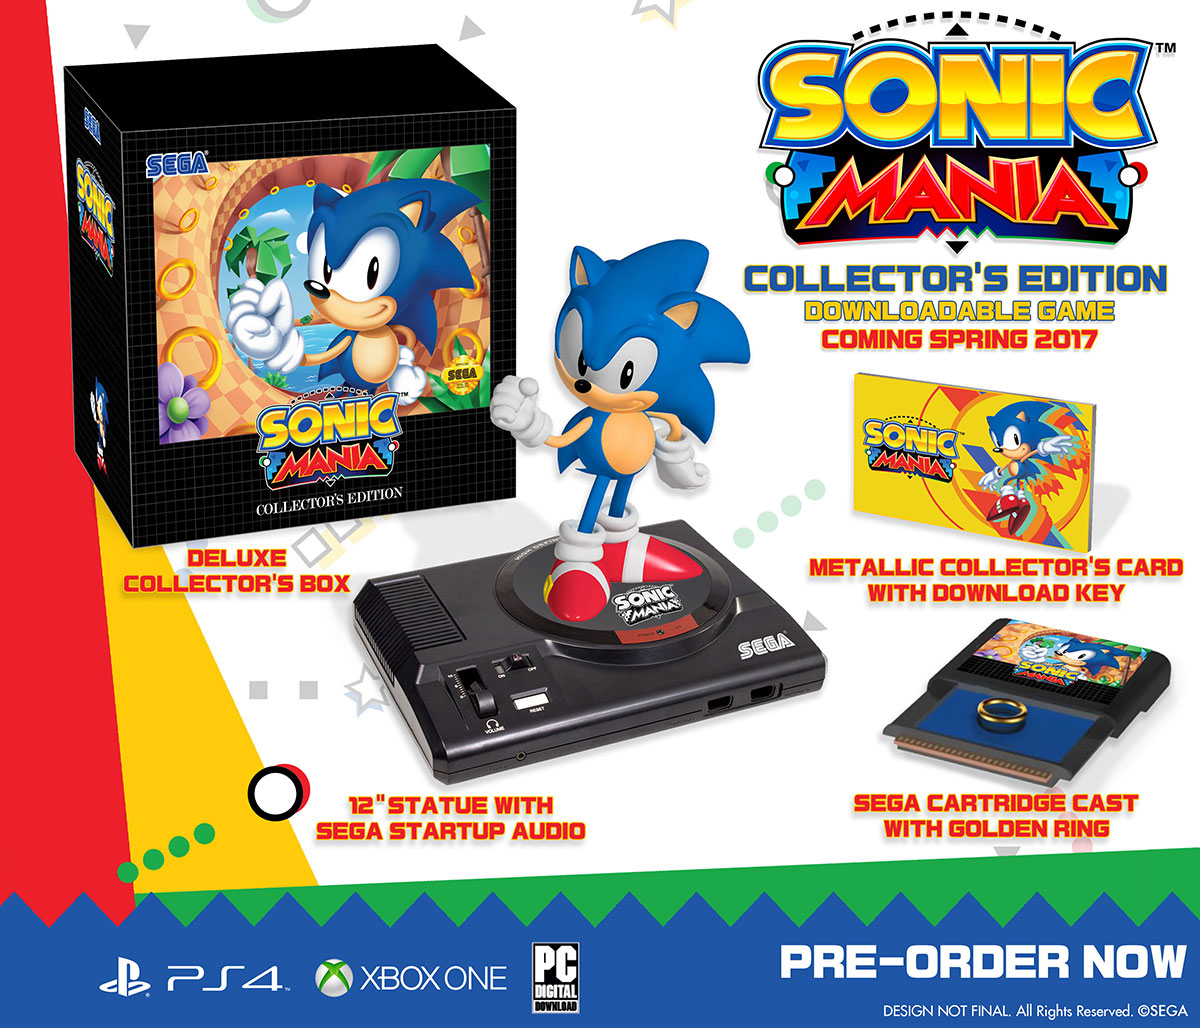 sonic-mania-collectors-edition-promo-02